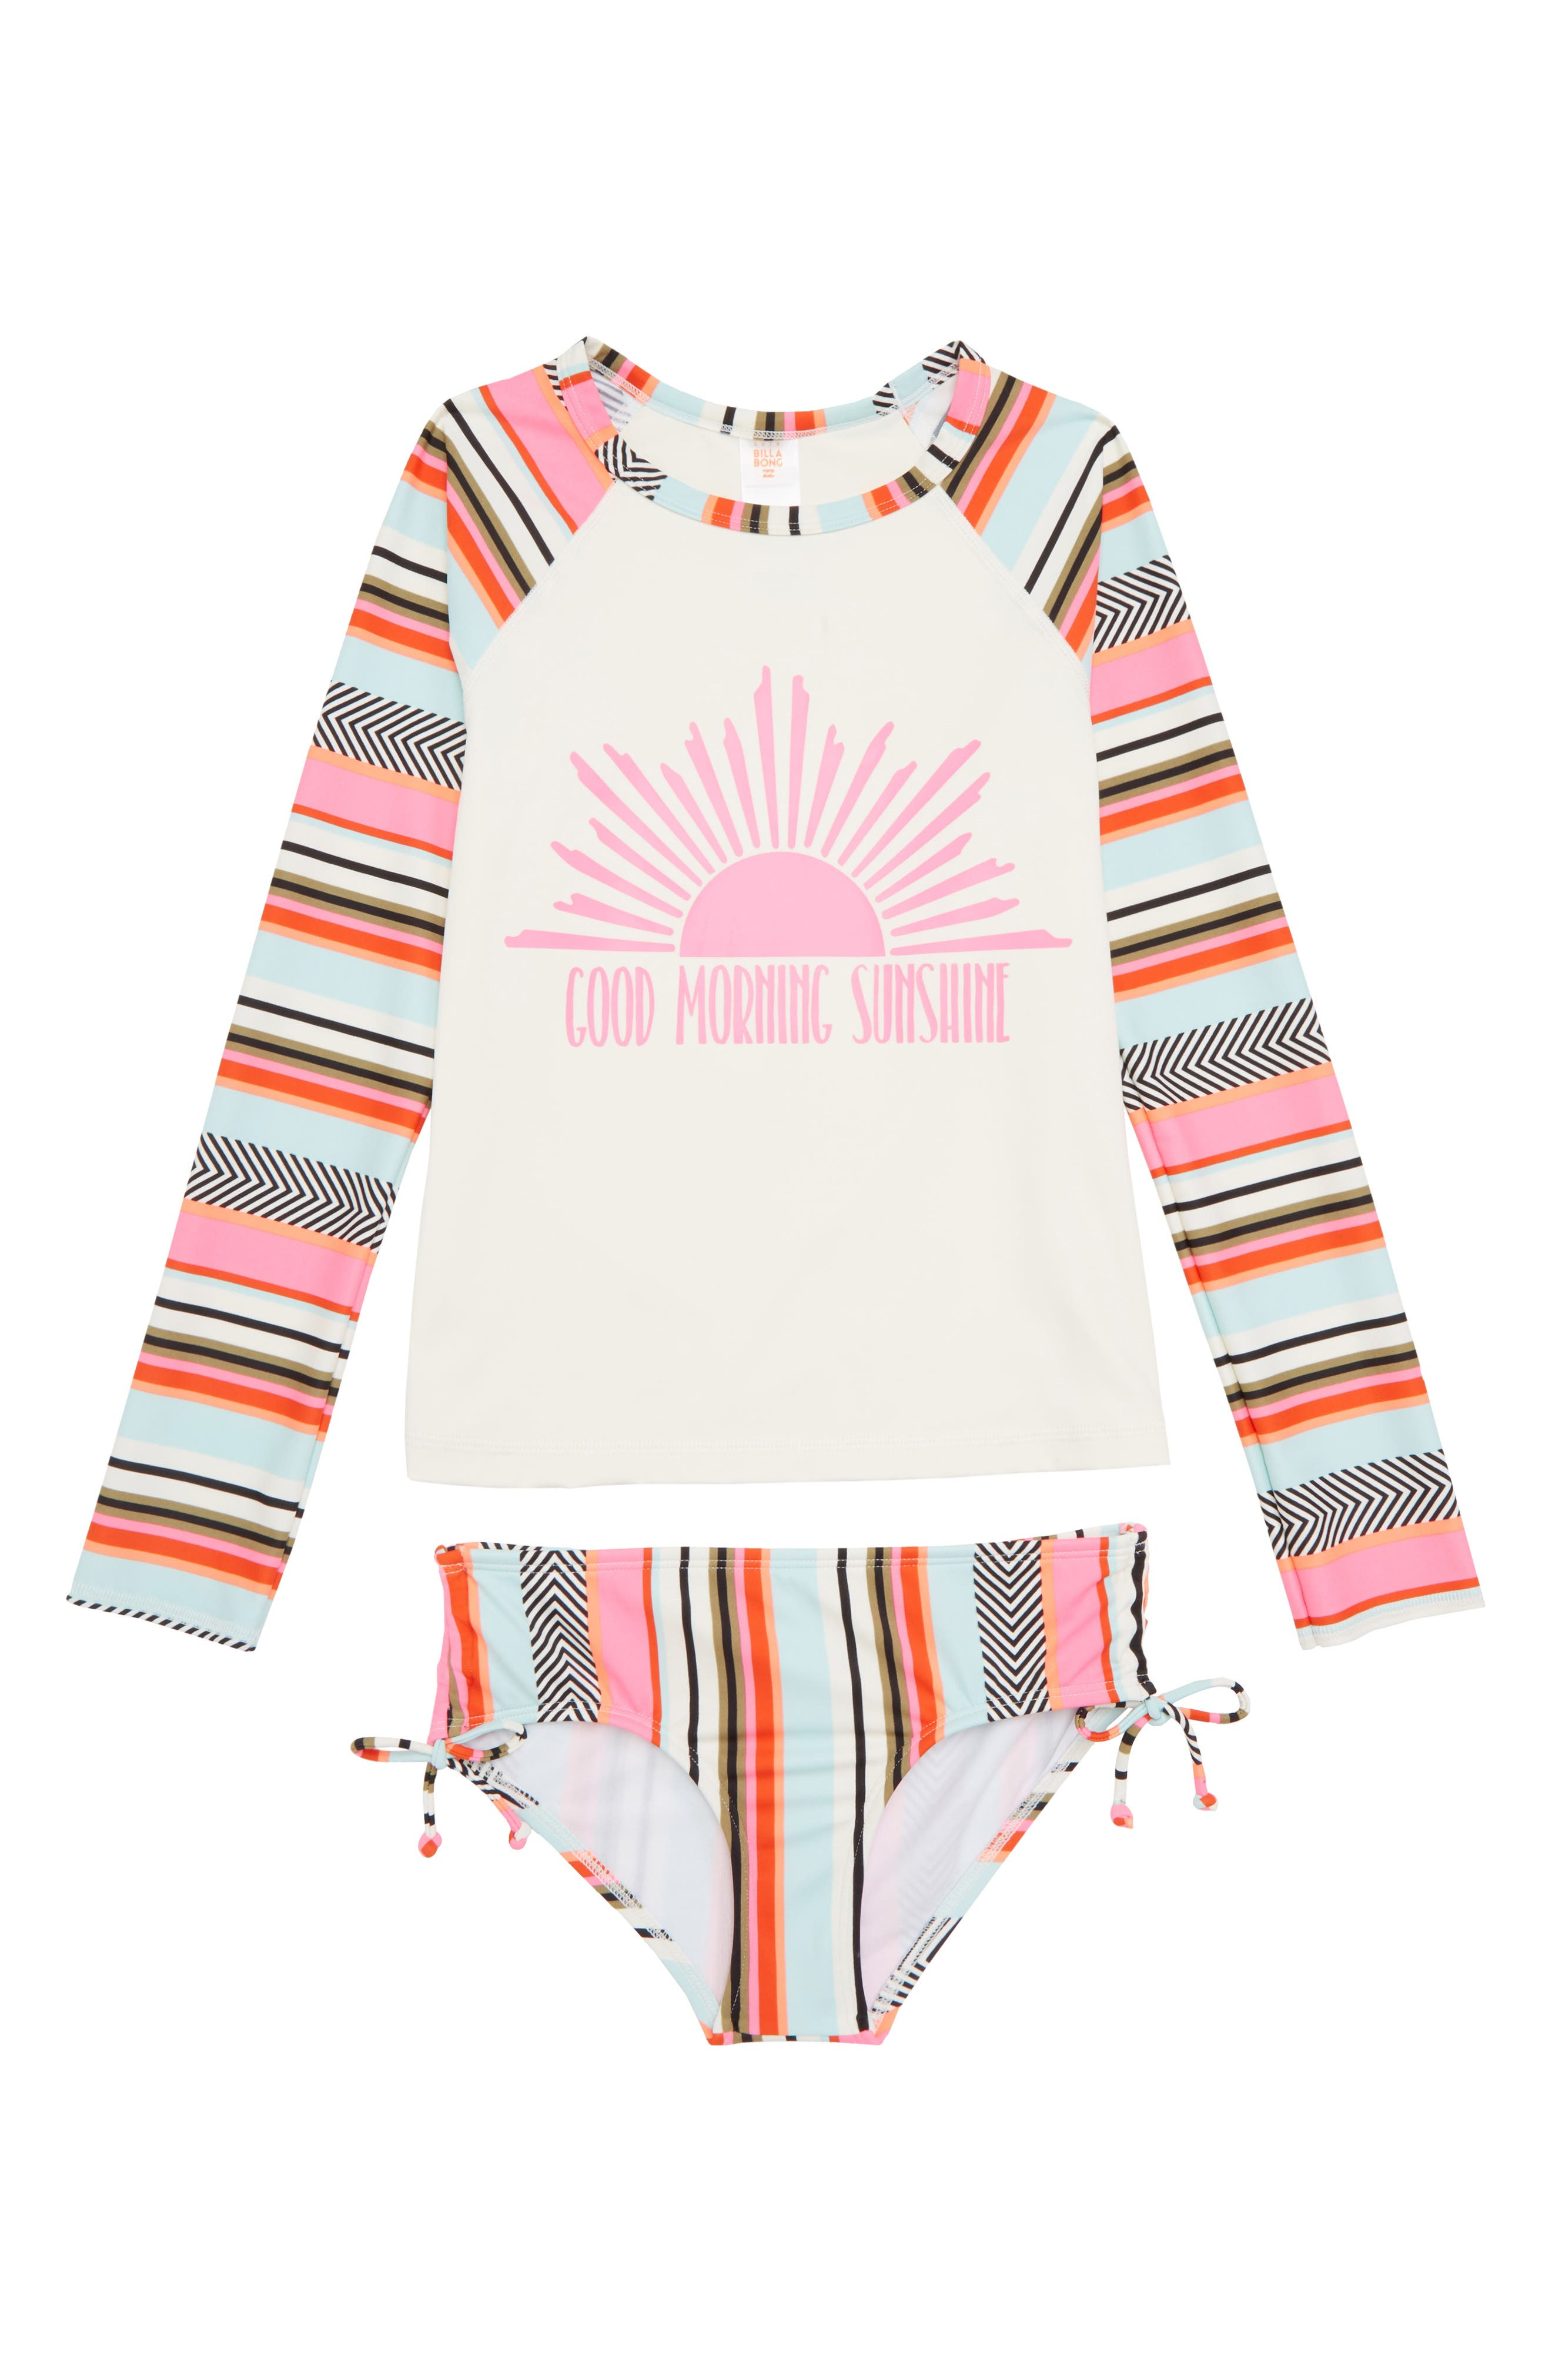 Good Morning Sunshine Two-Piece Rashguard Swimsuit,                             Main thumbnail 1, color,                             655